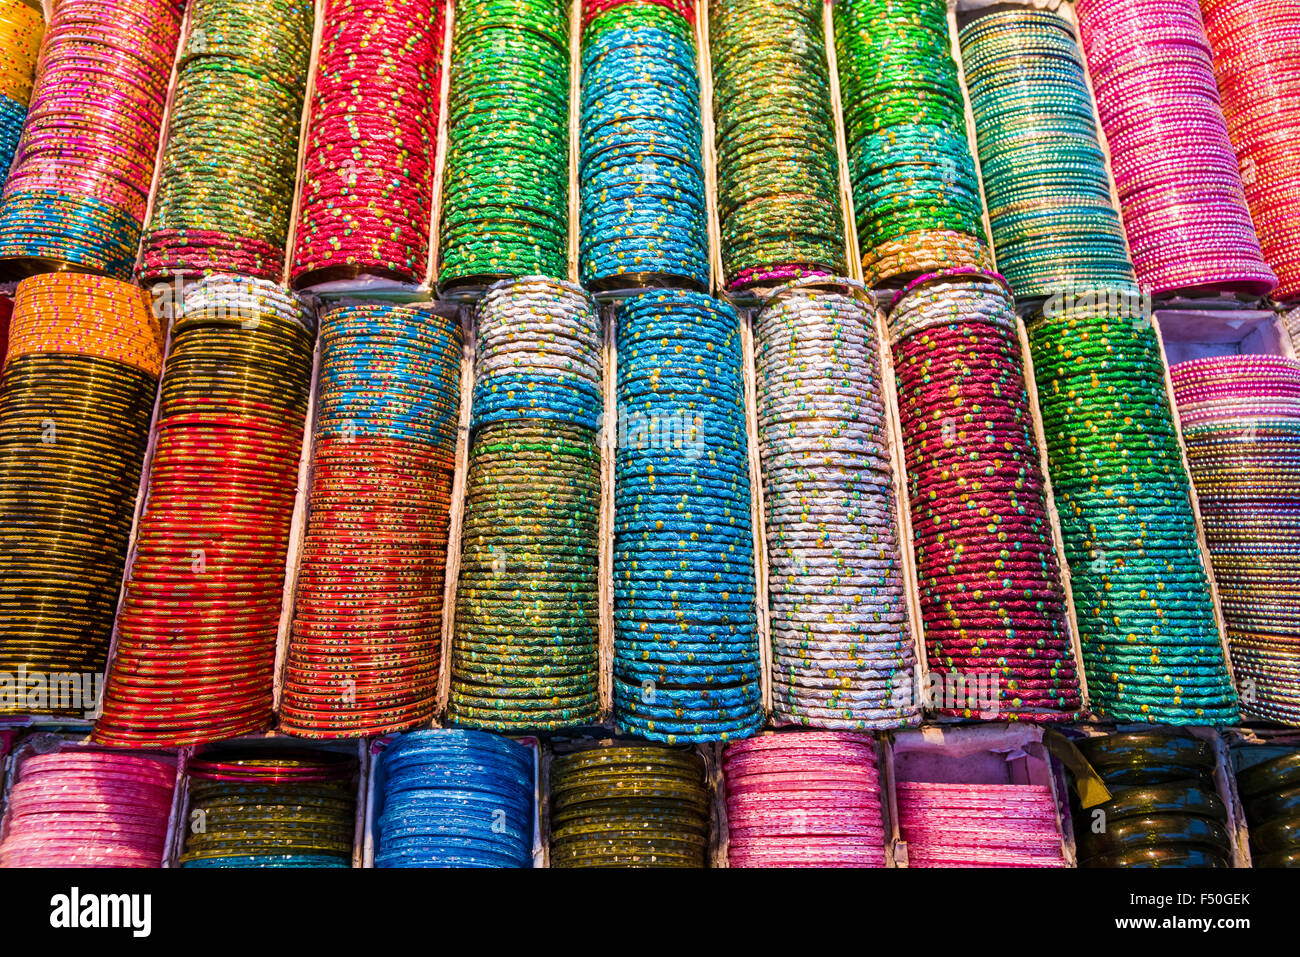 Colorful bangles, the traditional glas jewellery for women, are displayed for sale - Stock Image